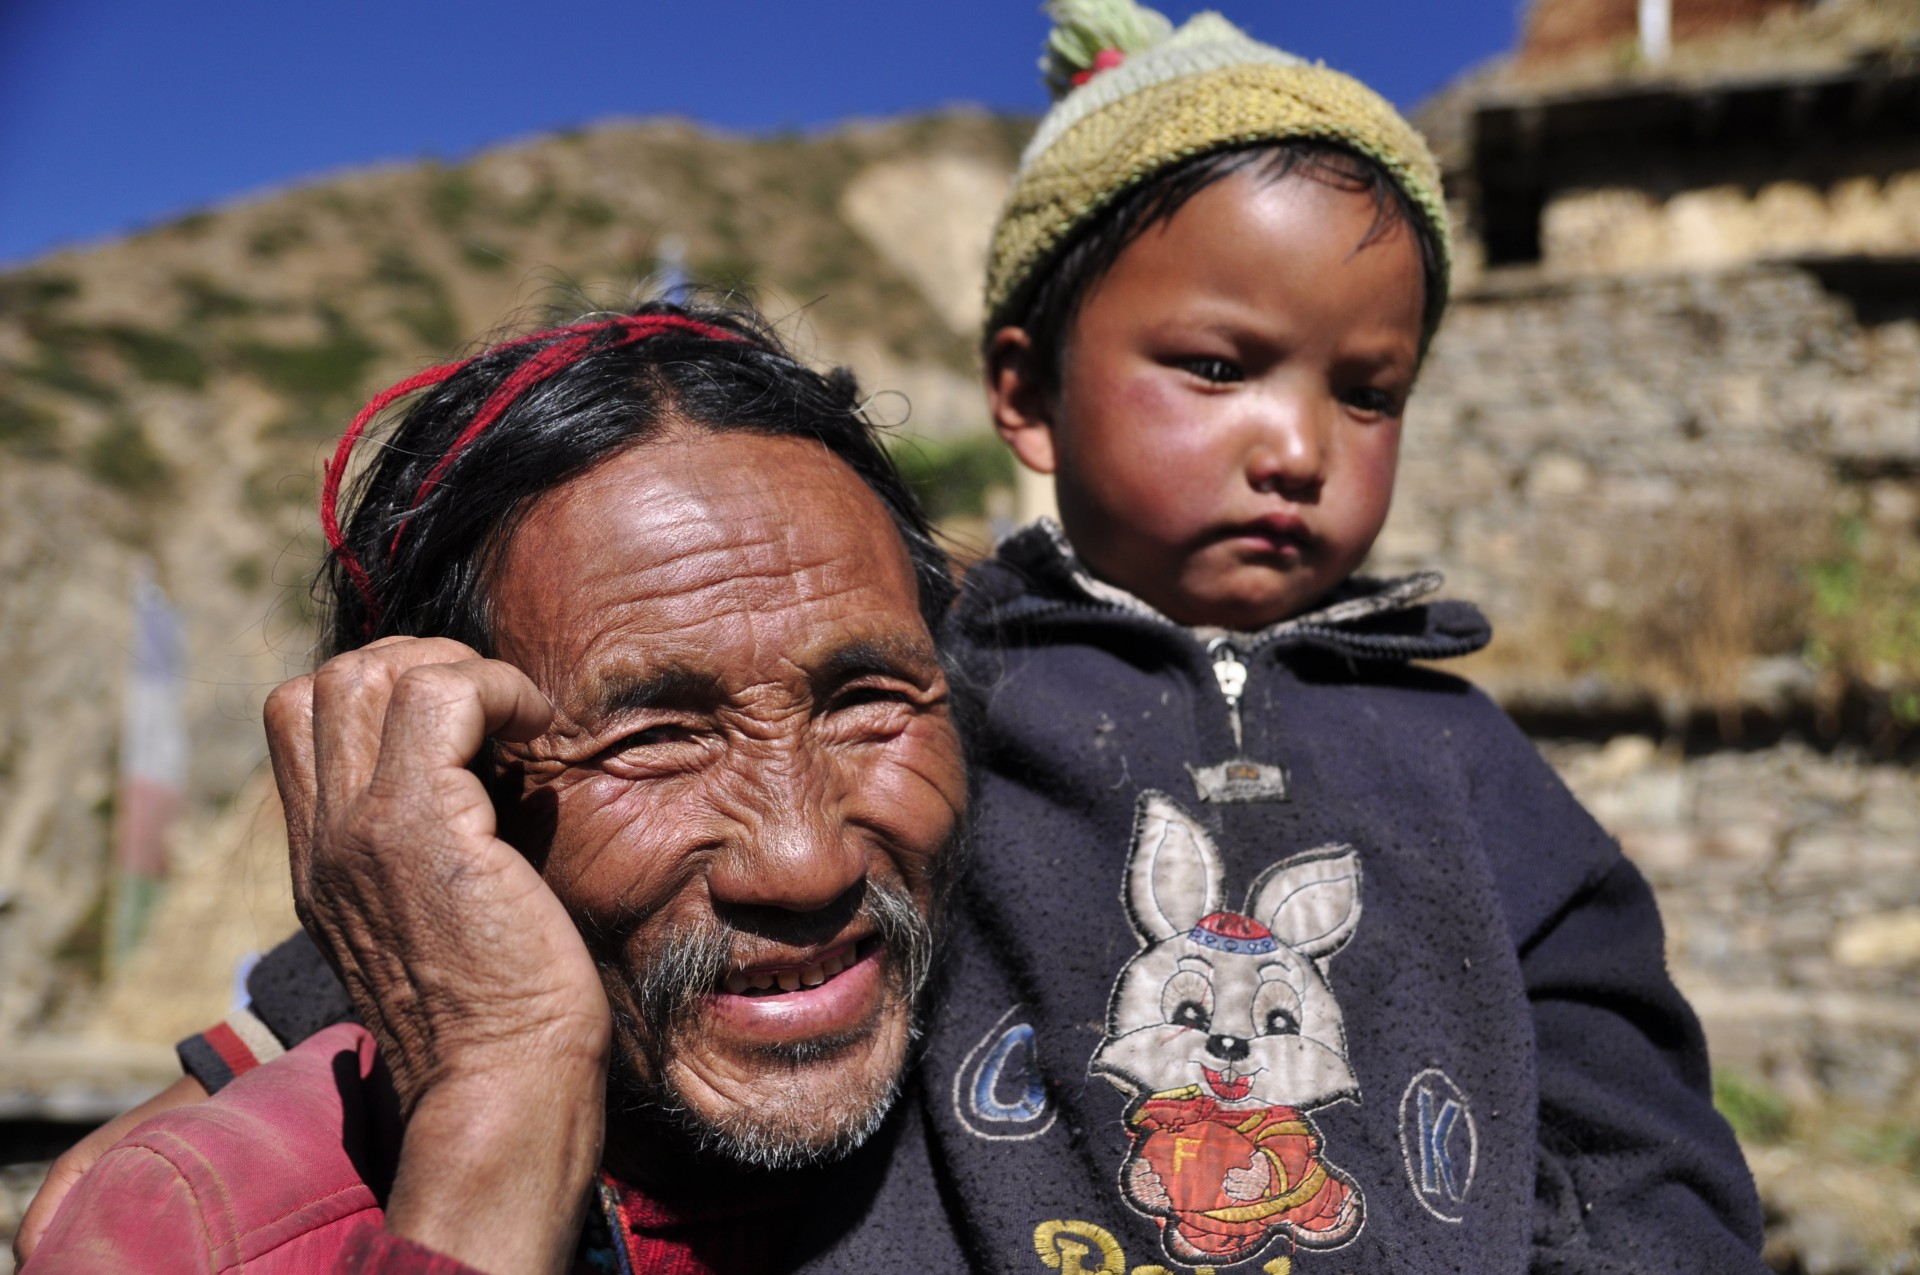 Father-and-son-in-Humla-Nepal.jpg